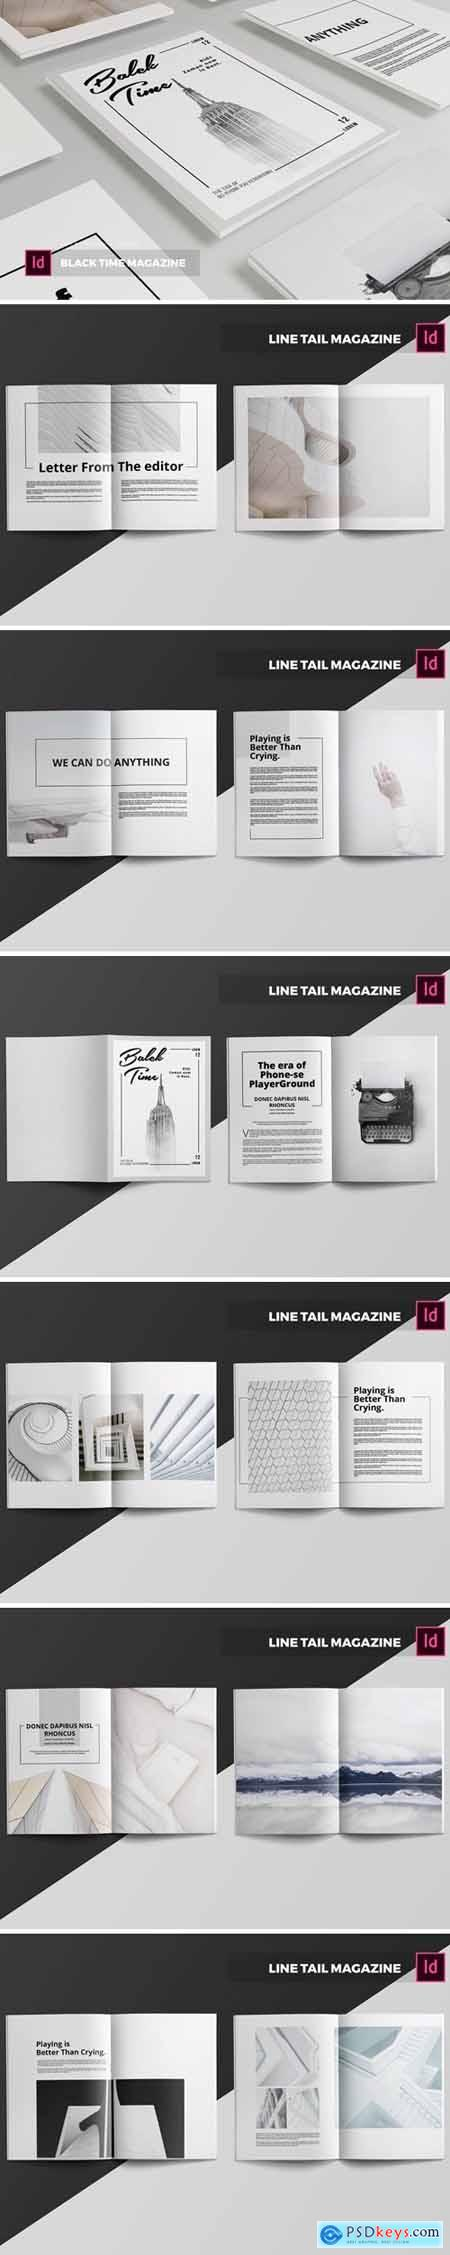 Line Tail Magazine Template